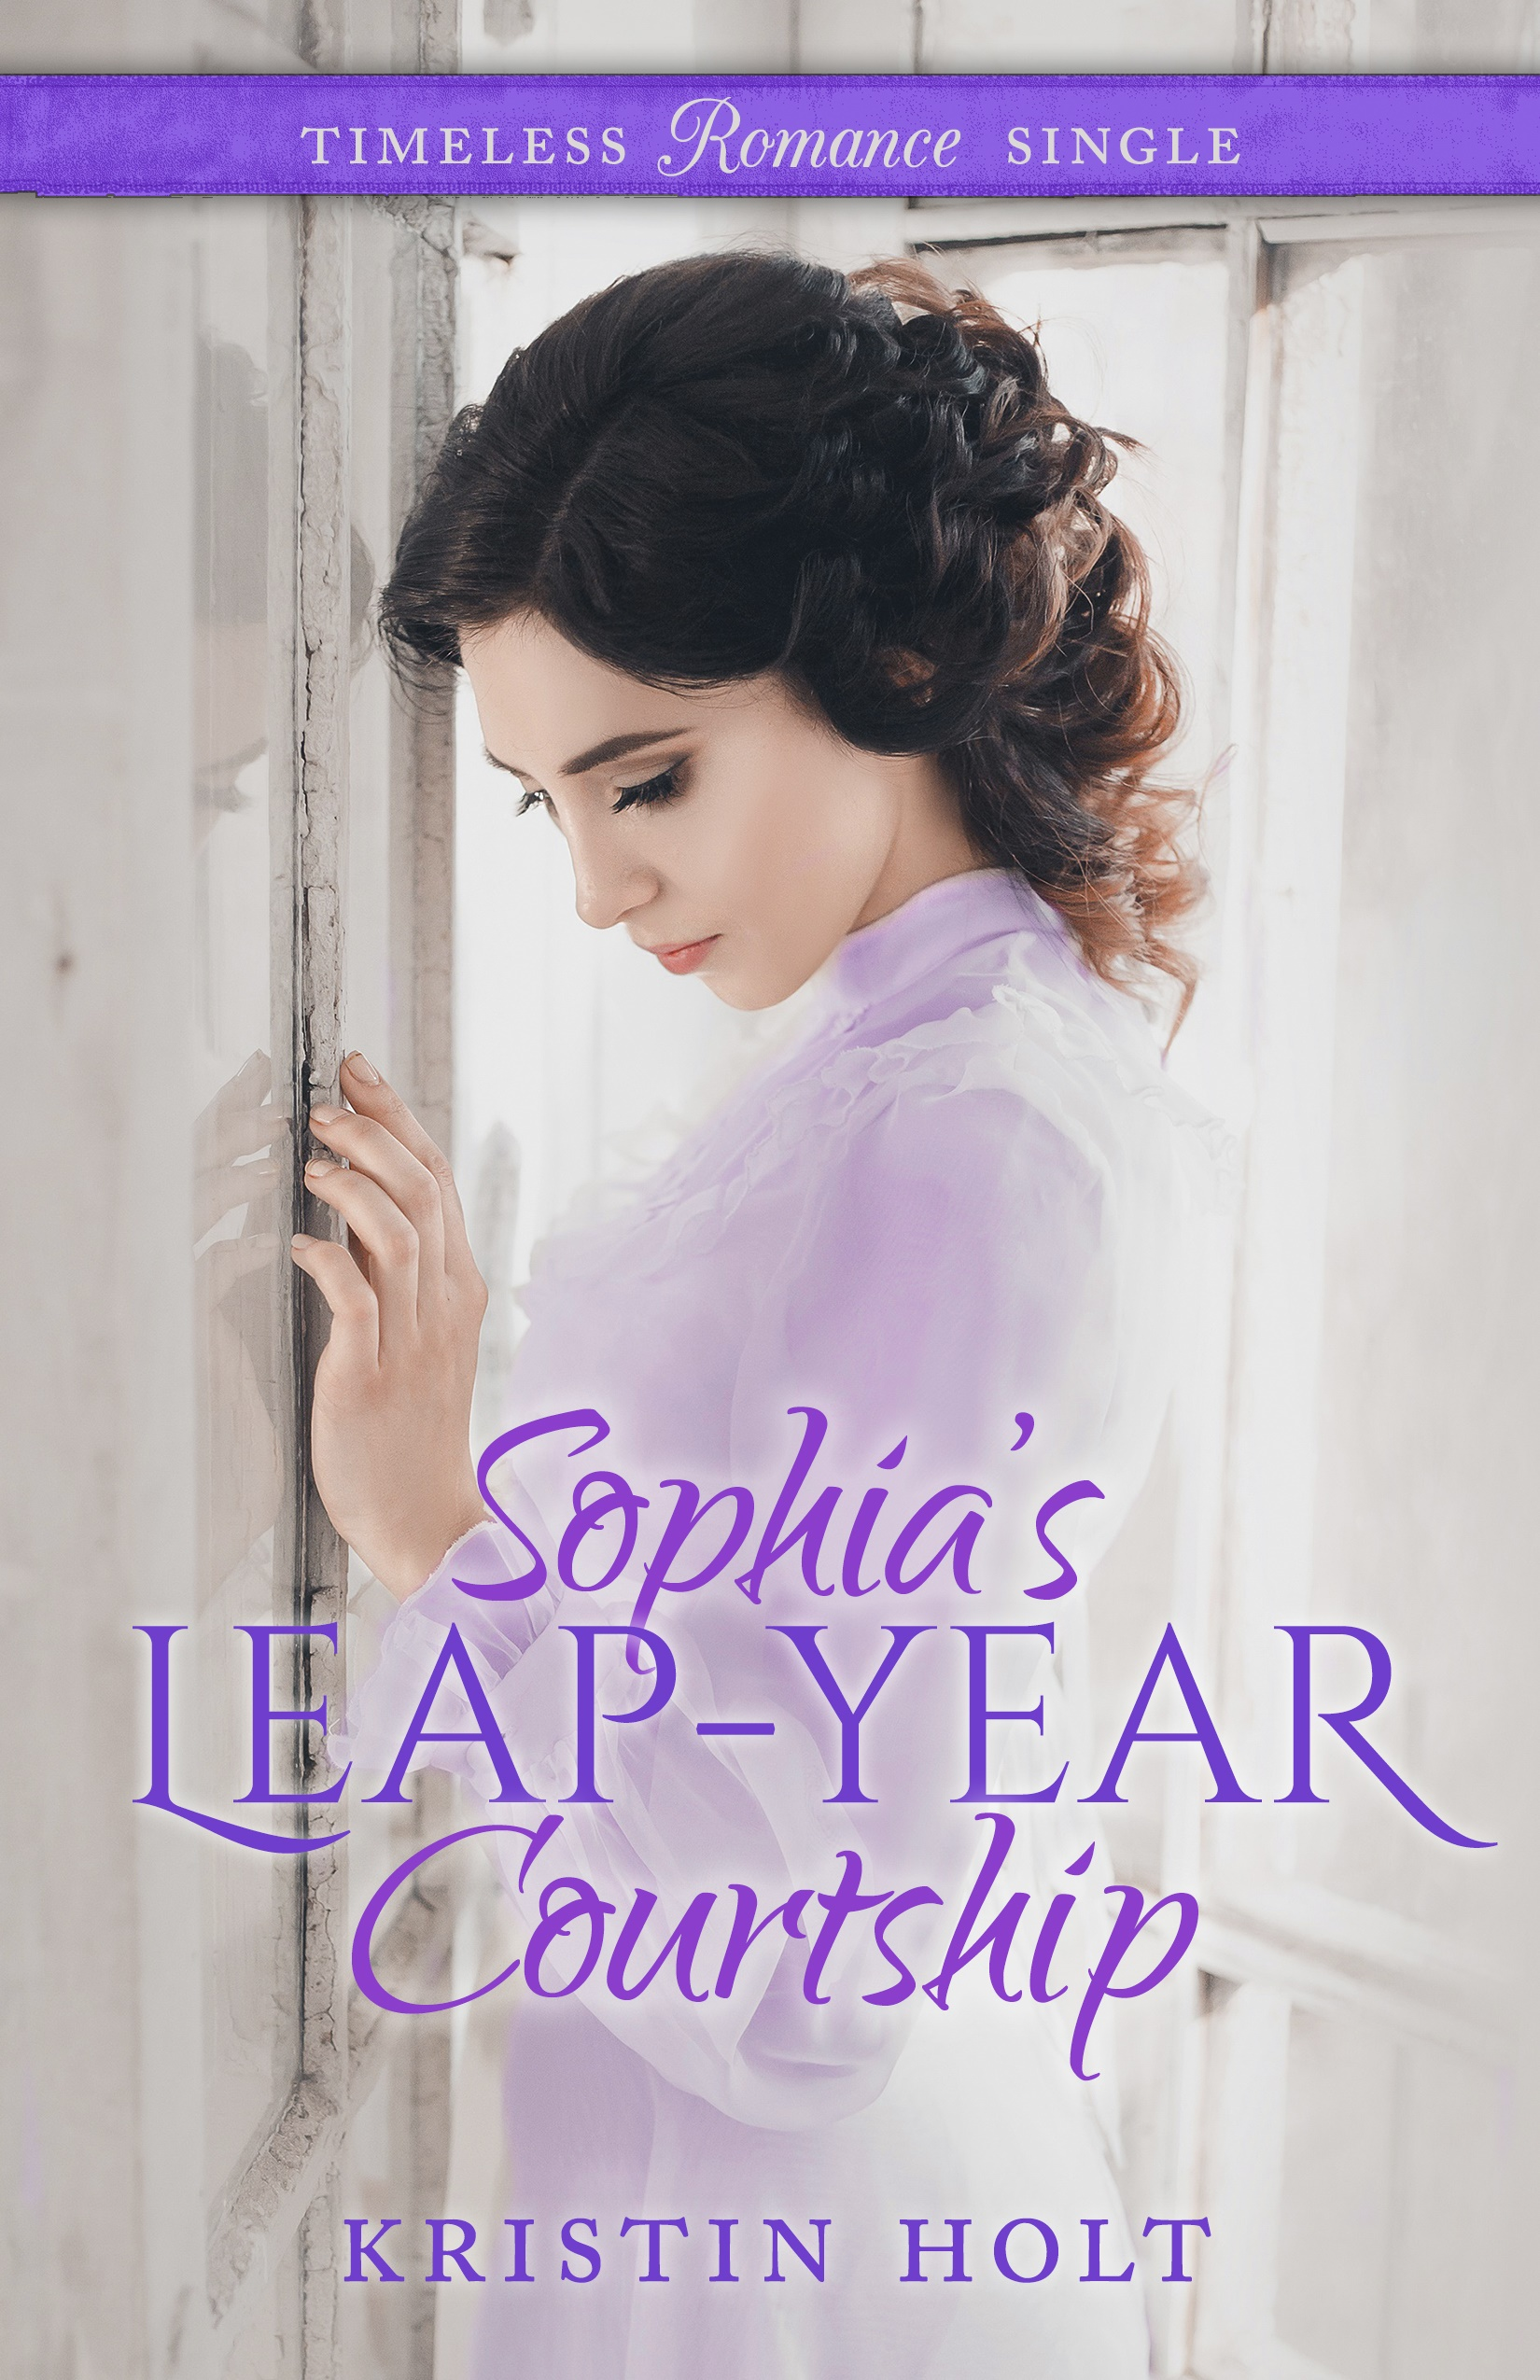 Kristin Holt | Image: eBook cover: Sophia's Leap-Year Courtship by USA Today Bestselling Author Kristin Holt